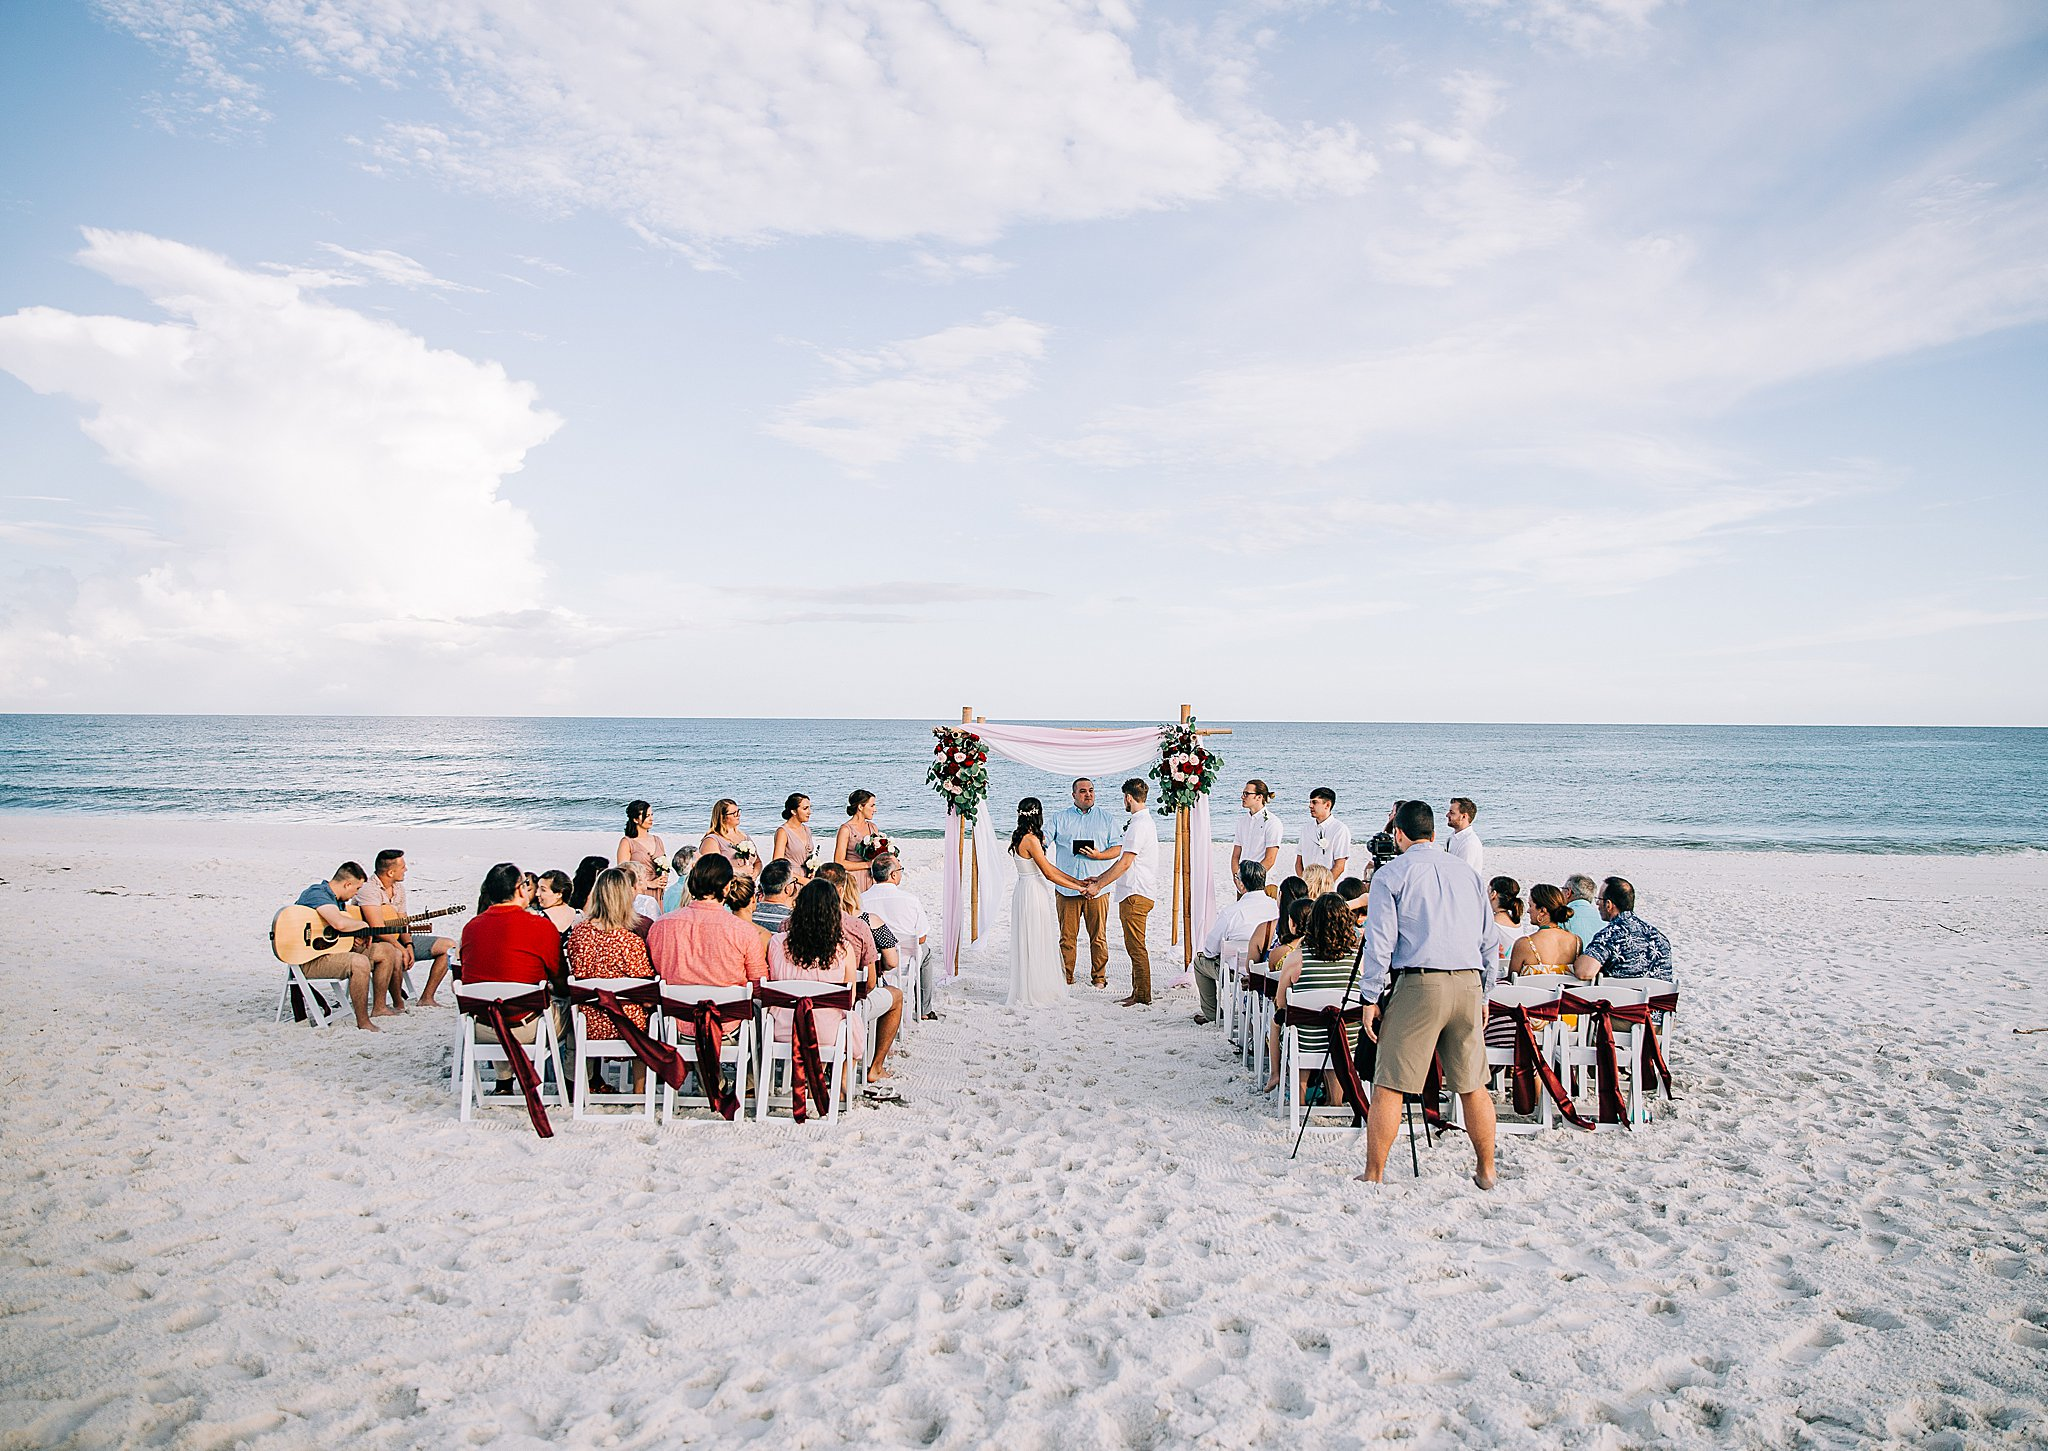 Perfect weather for a beach wedding